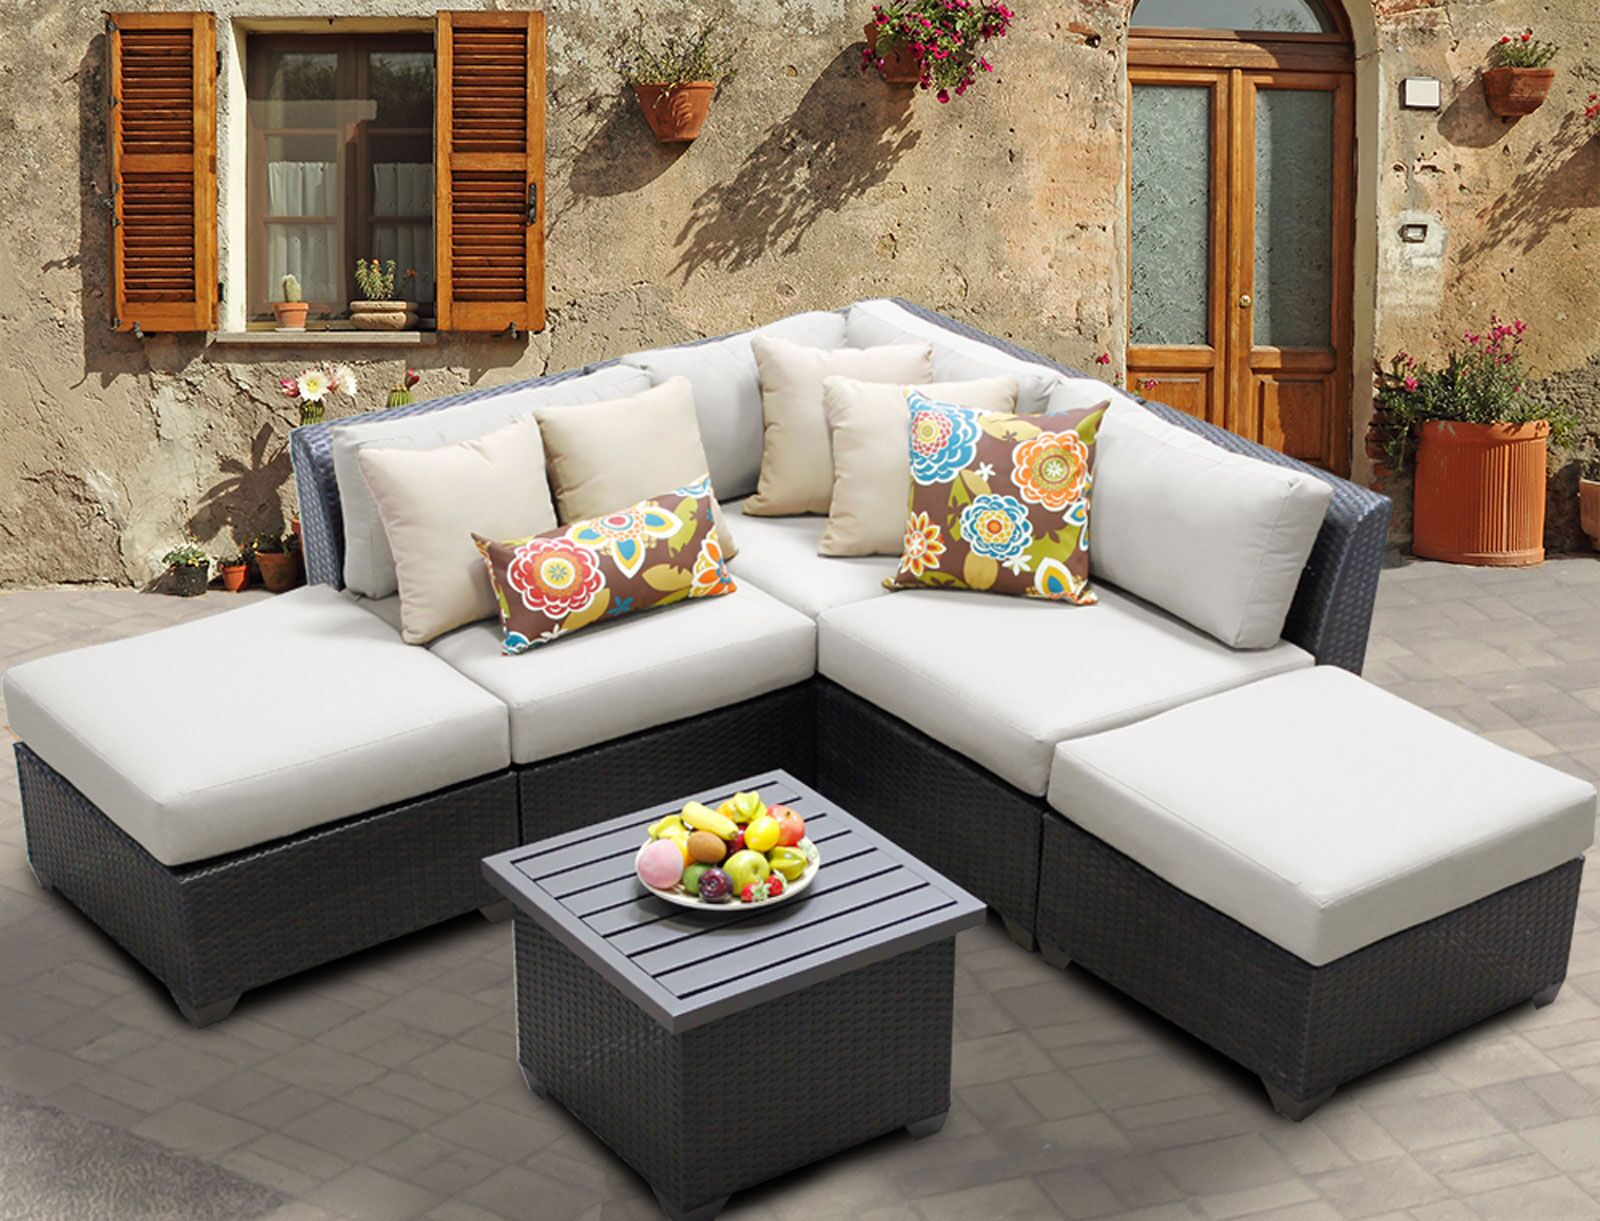 Barbados 6 Piece Rattan Sectional Set with Cushions Color: Beige